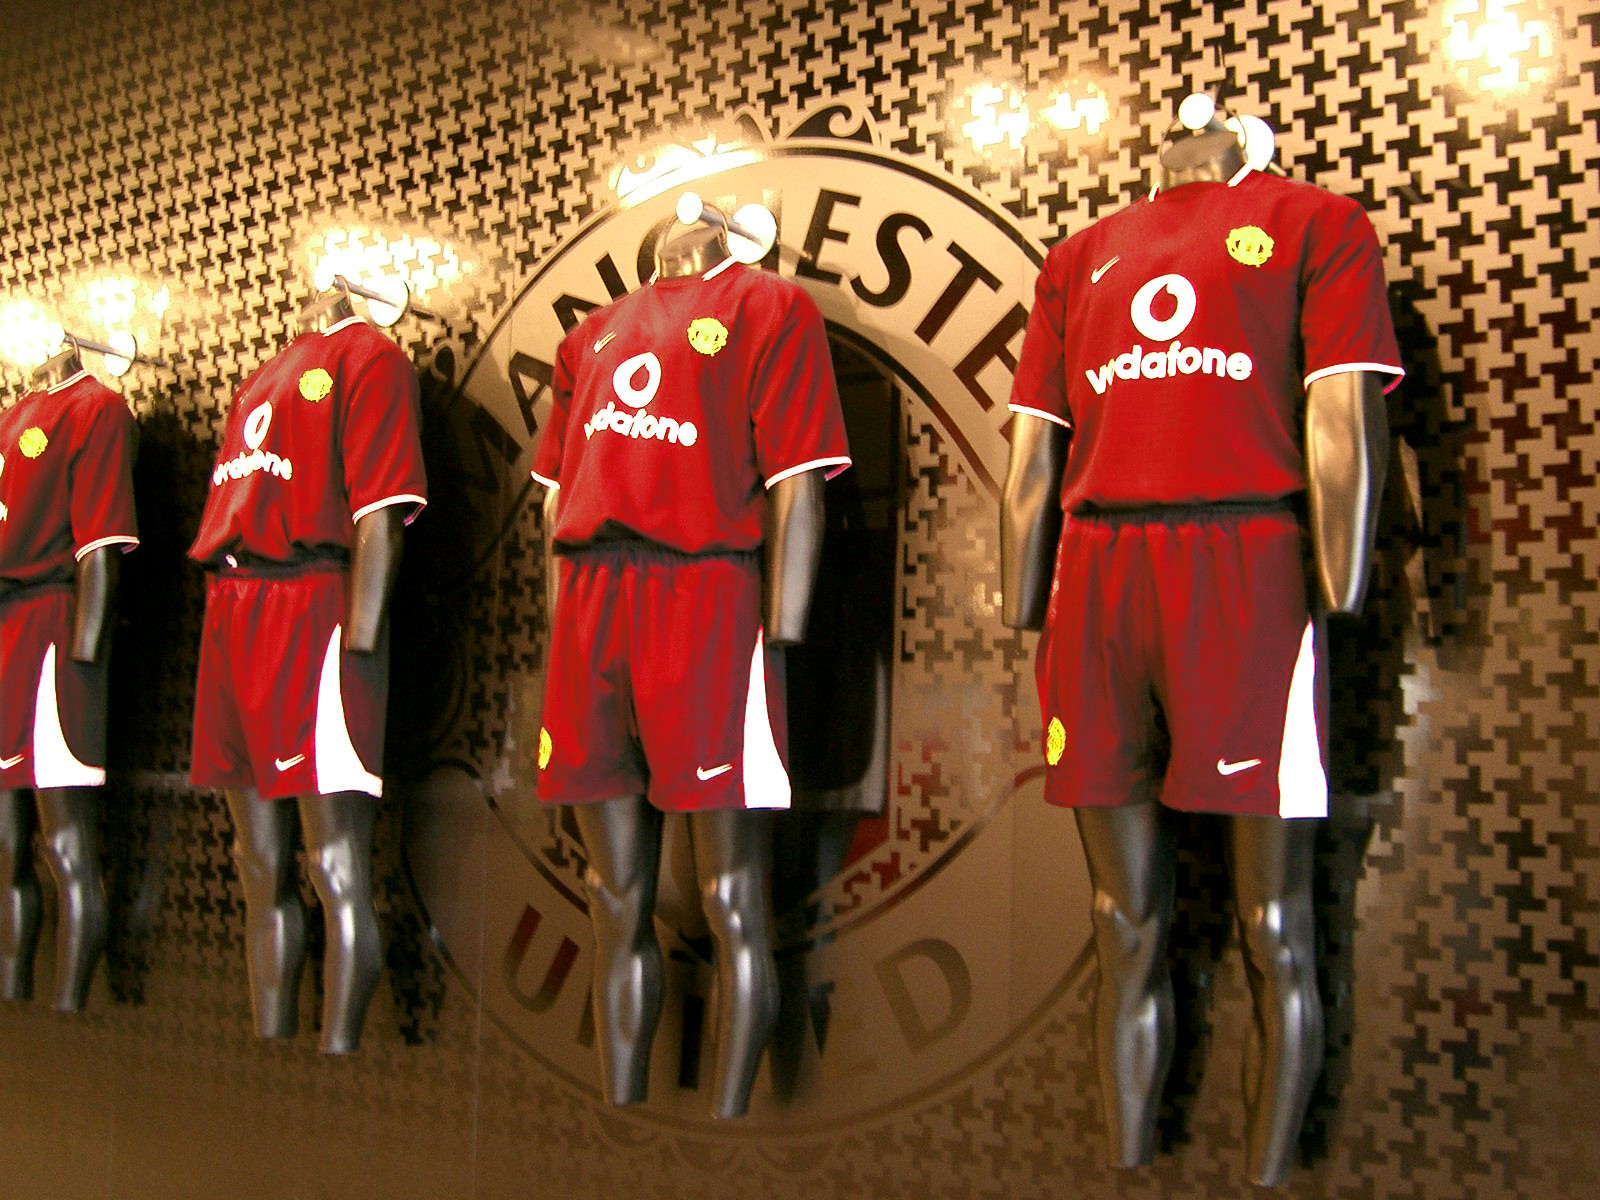 hot sale online 9a13c eda8c File:Manchester United kits.jpg - Wikimedia Commons